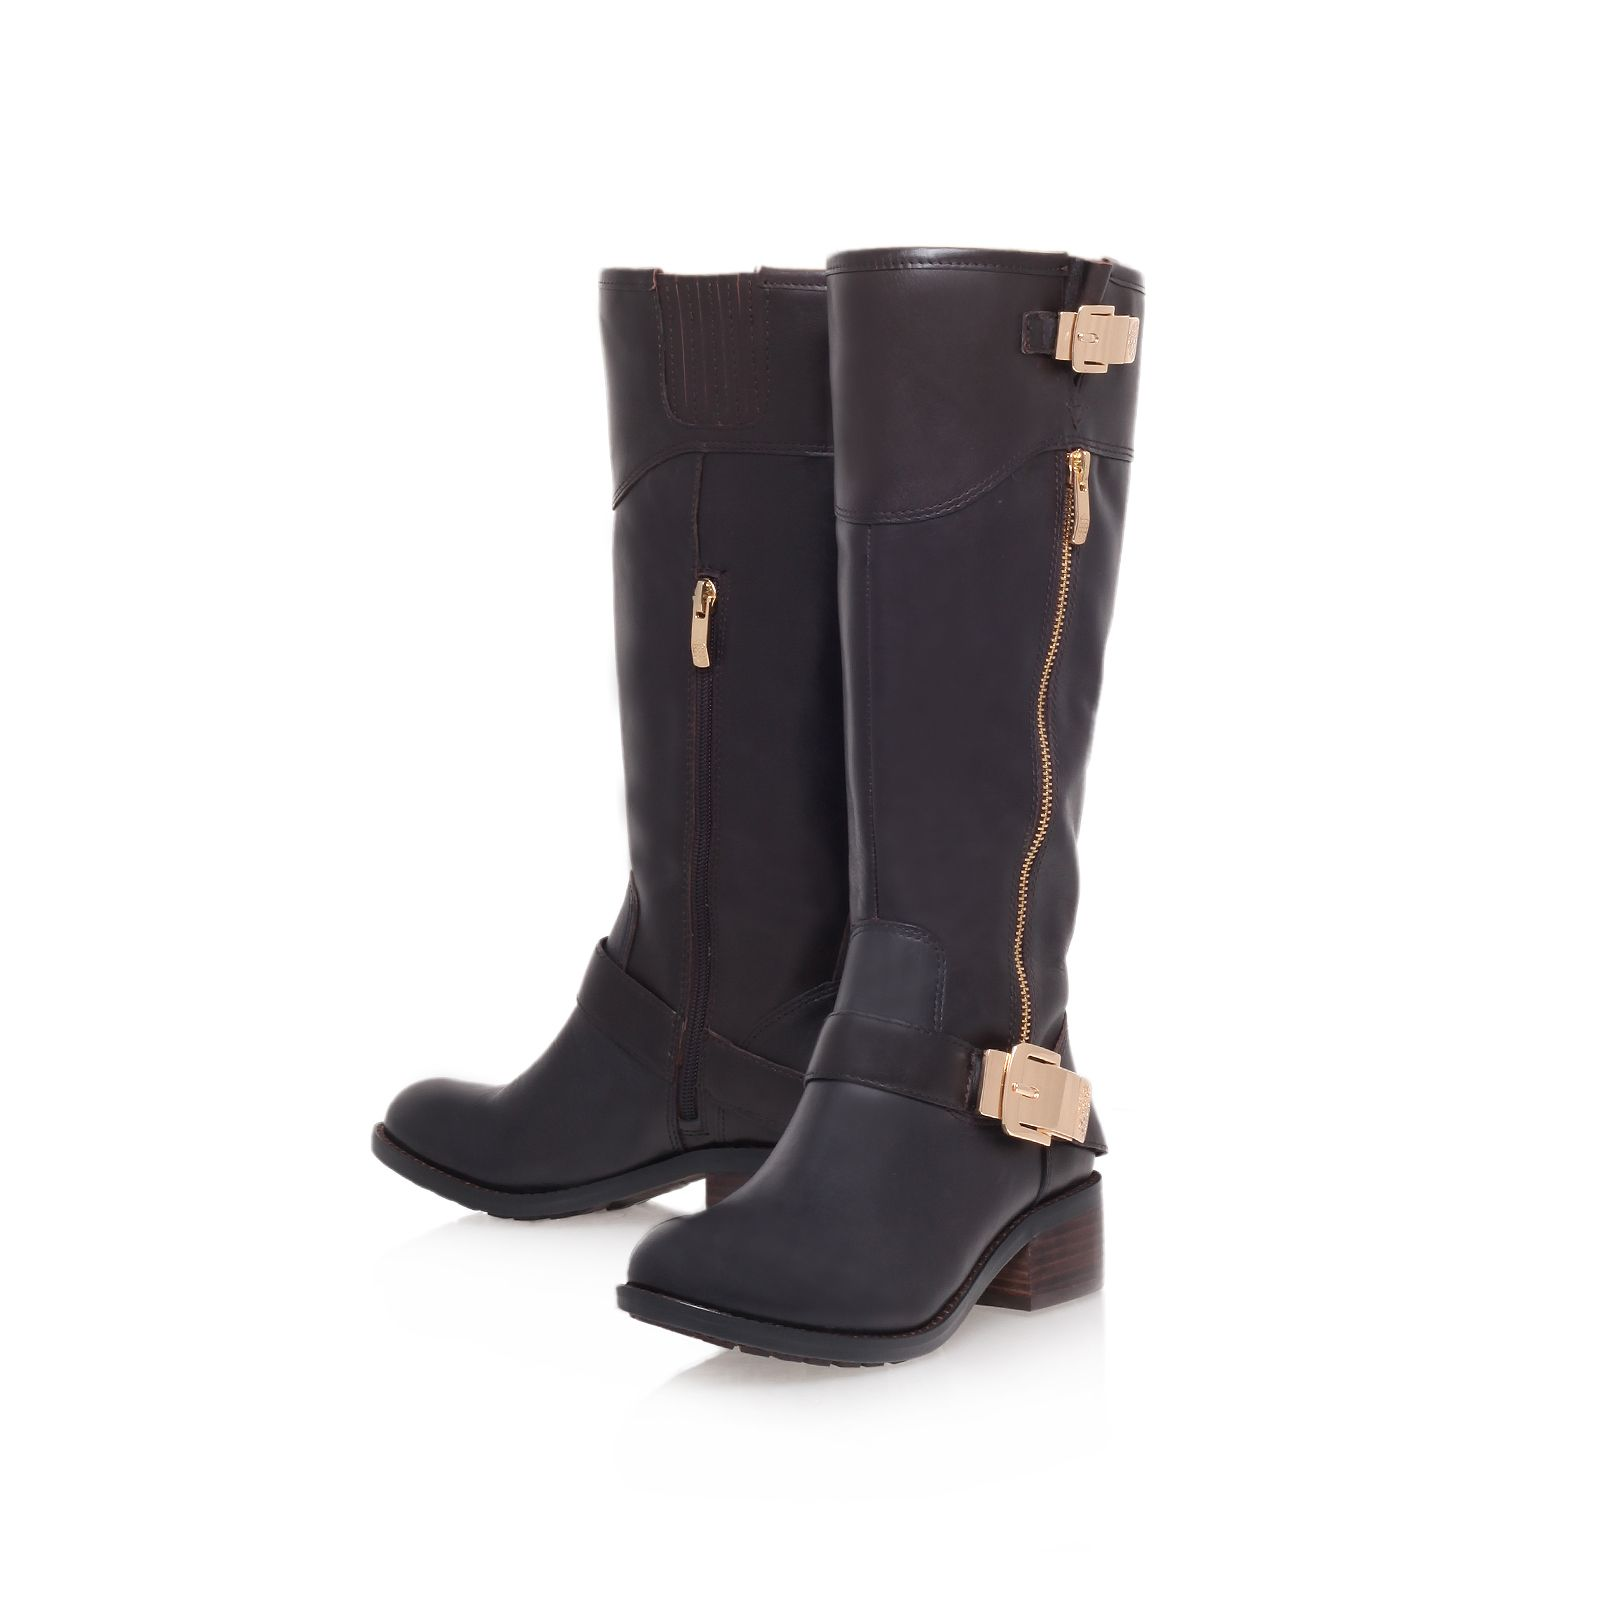 Waymin low heel knee boots